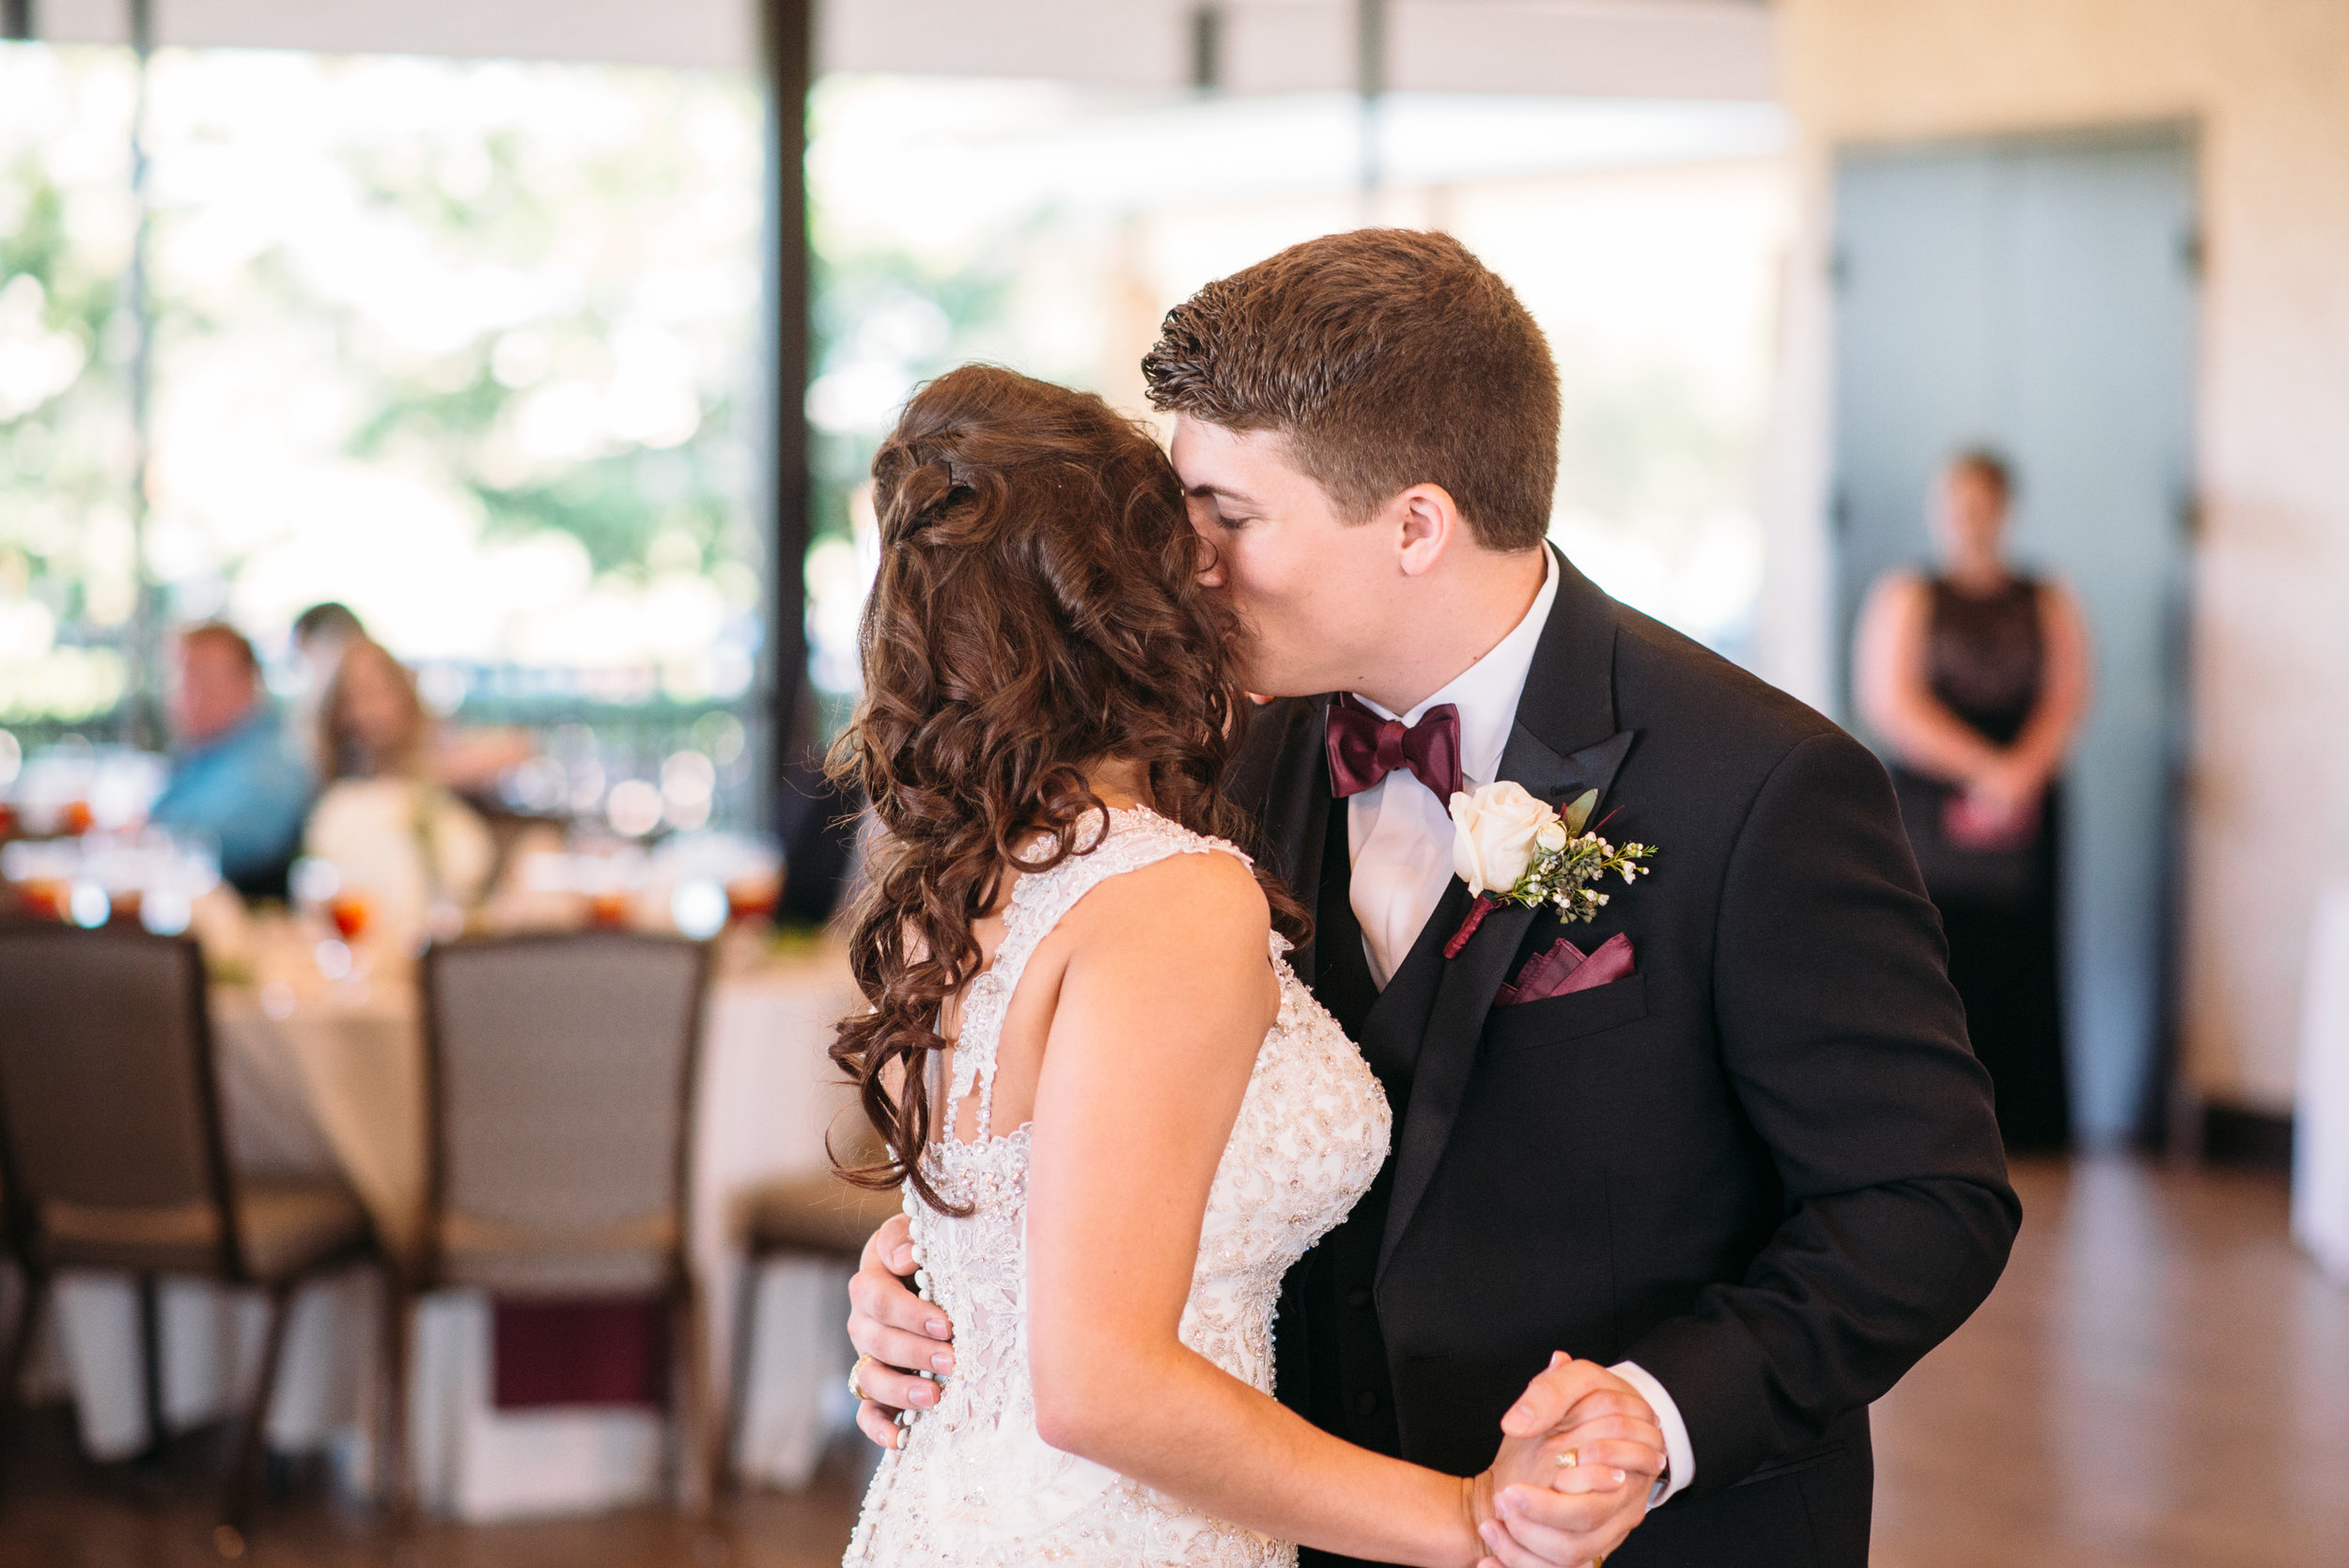 PhillipsEventCenter-AggieWedding-CollegeStationPhotographer_39.jpg